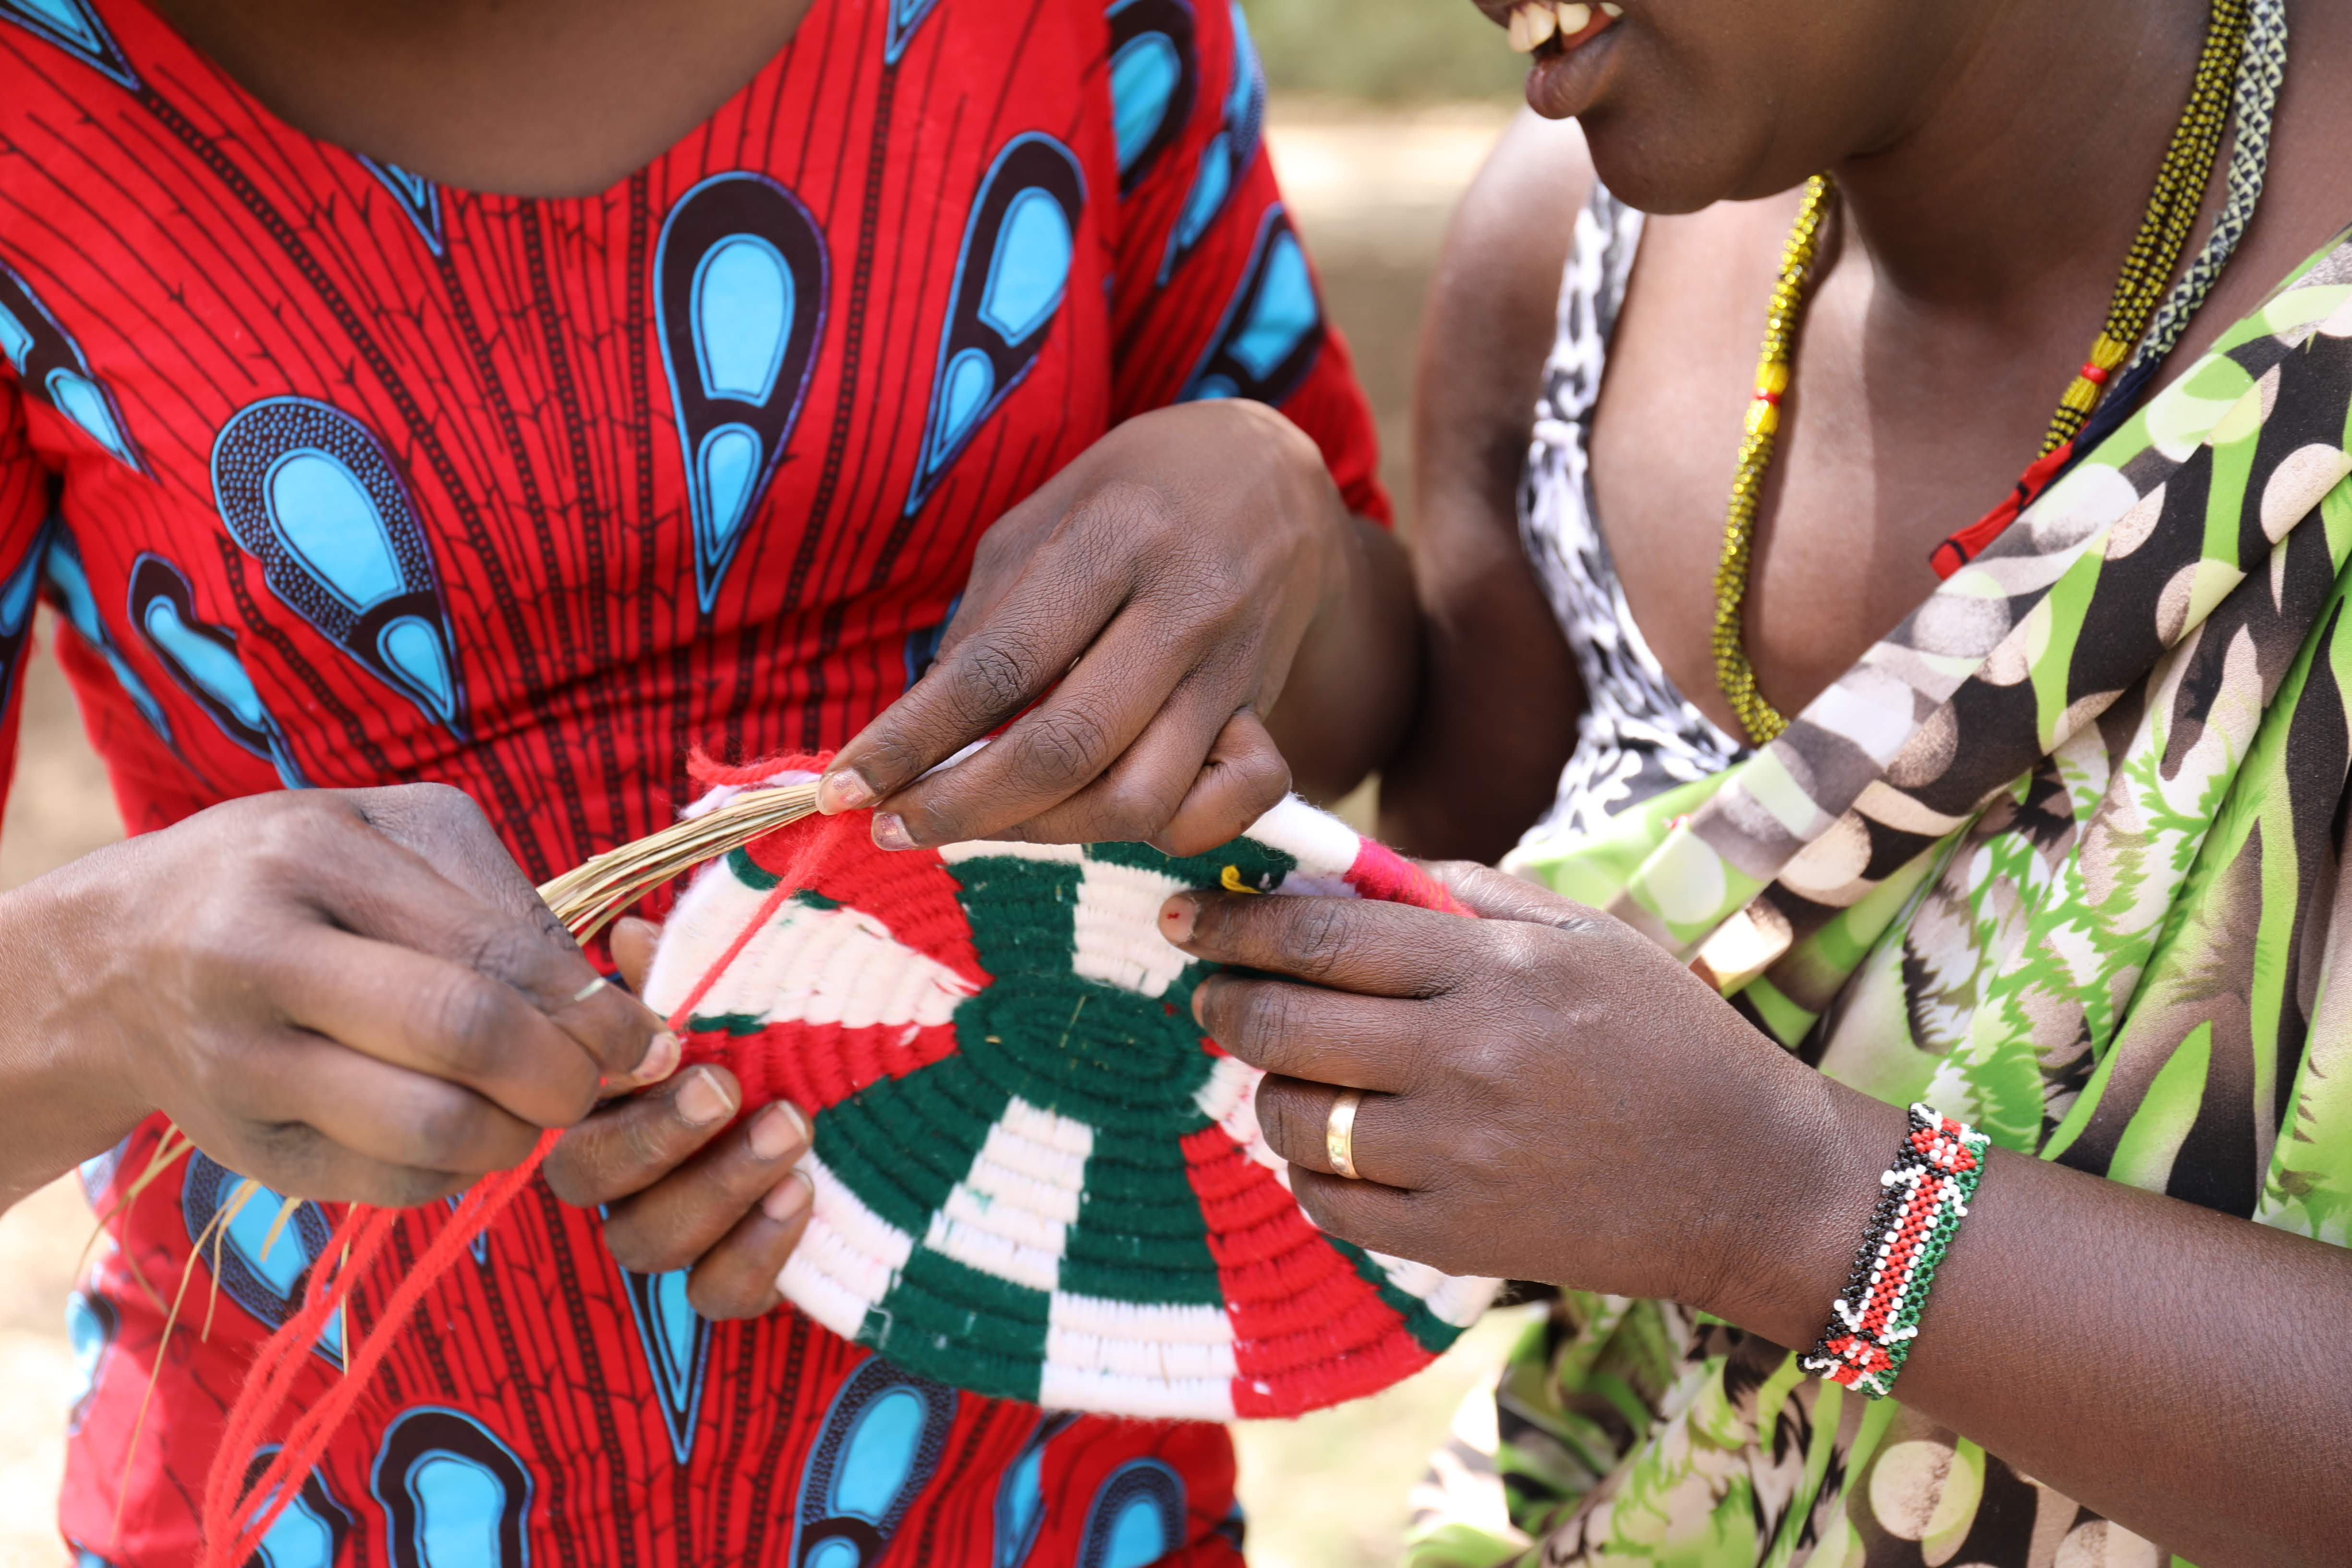 Two women in colourful dresses working together to weave handmade basket